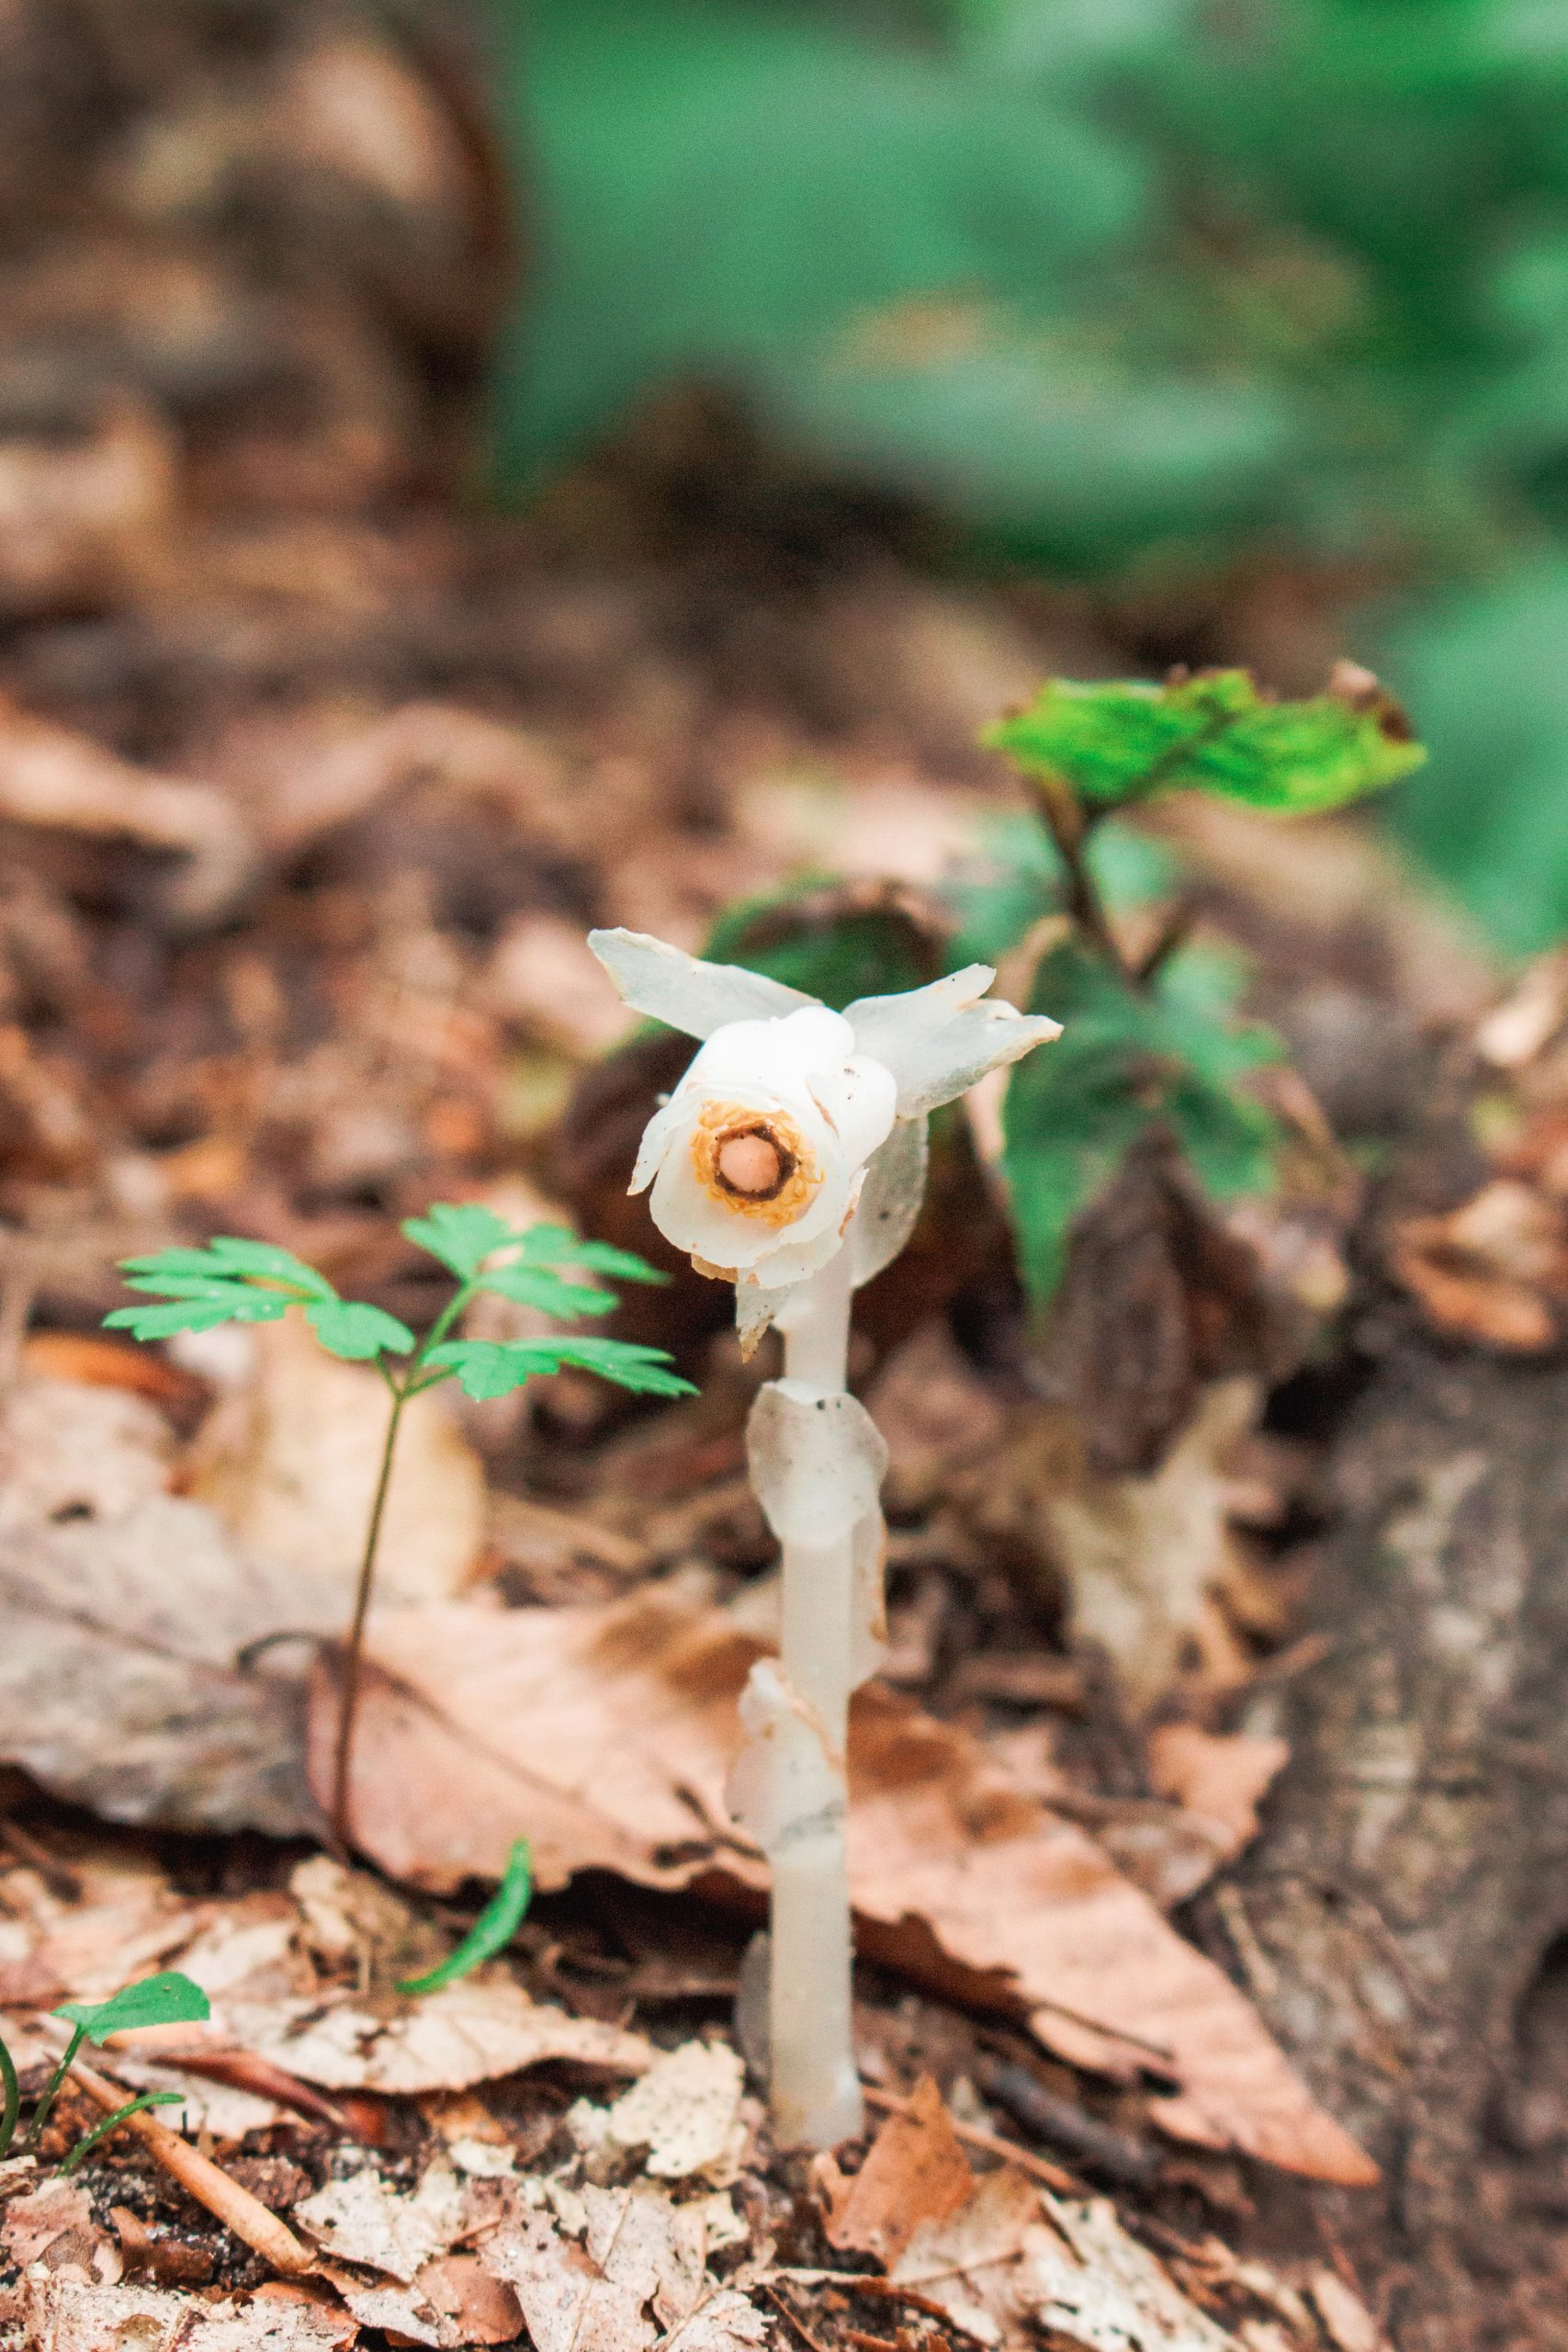 Indian PIpe (Monotropa uniflora) found on Old Baldy Trail